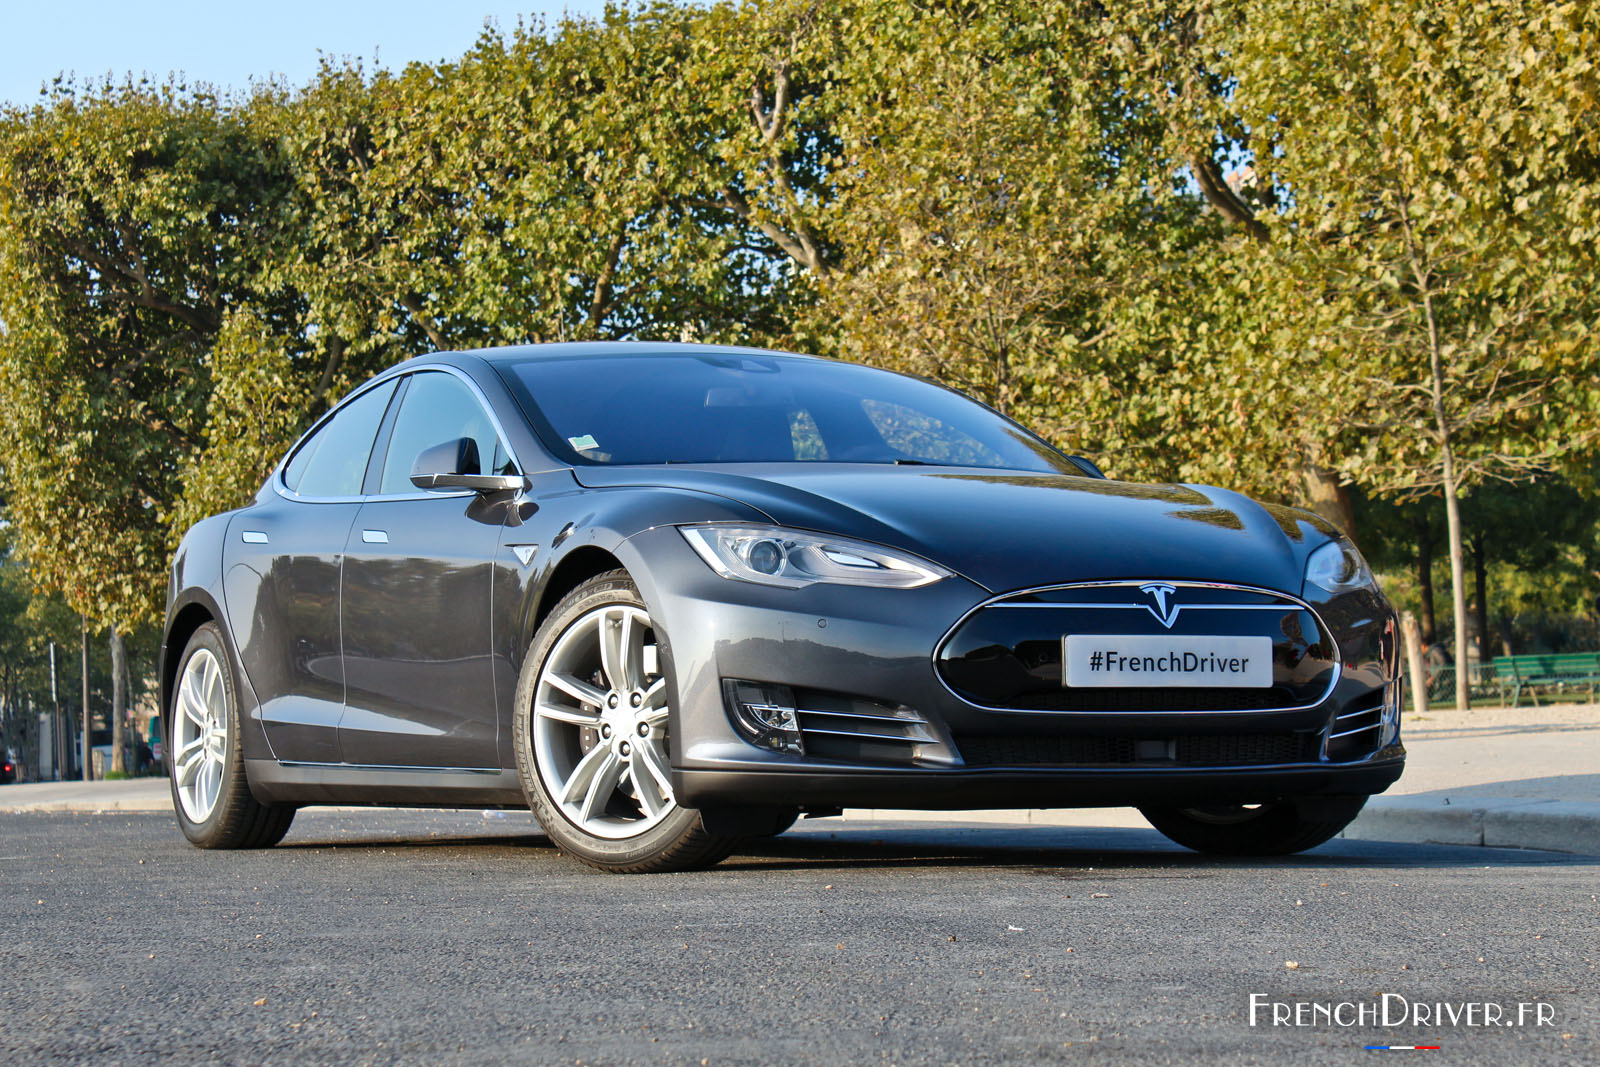 essai de la tesla model s une berline lectrique aboutie french driver. Black Bedroom Furniture Sets. Home Design Ideas